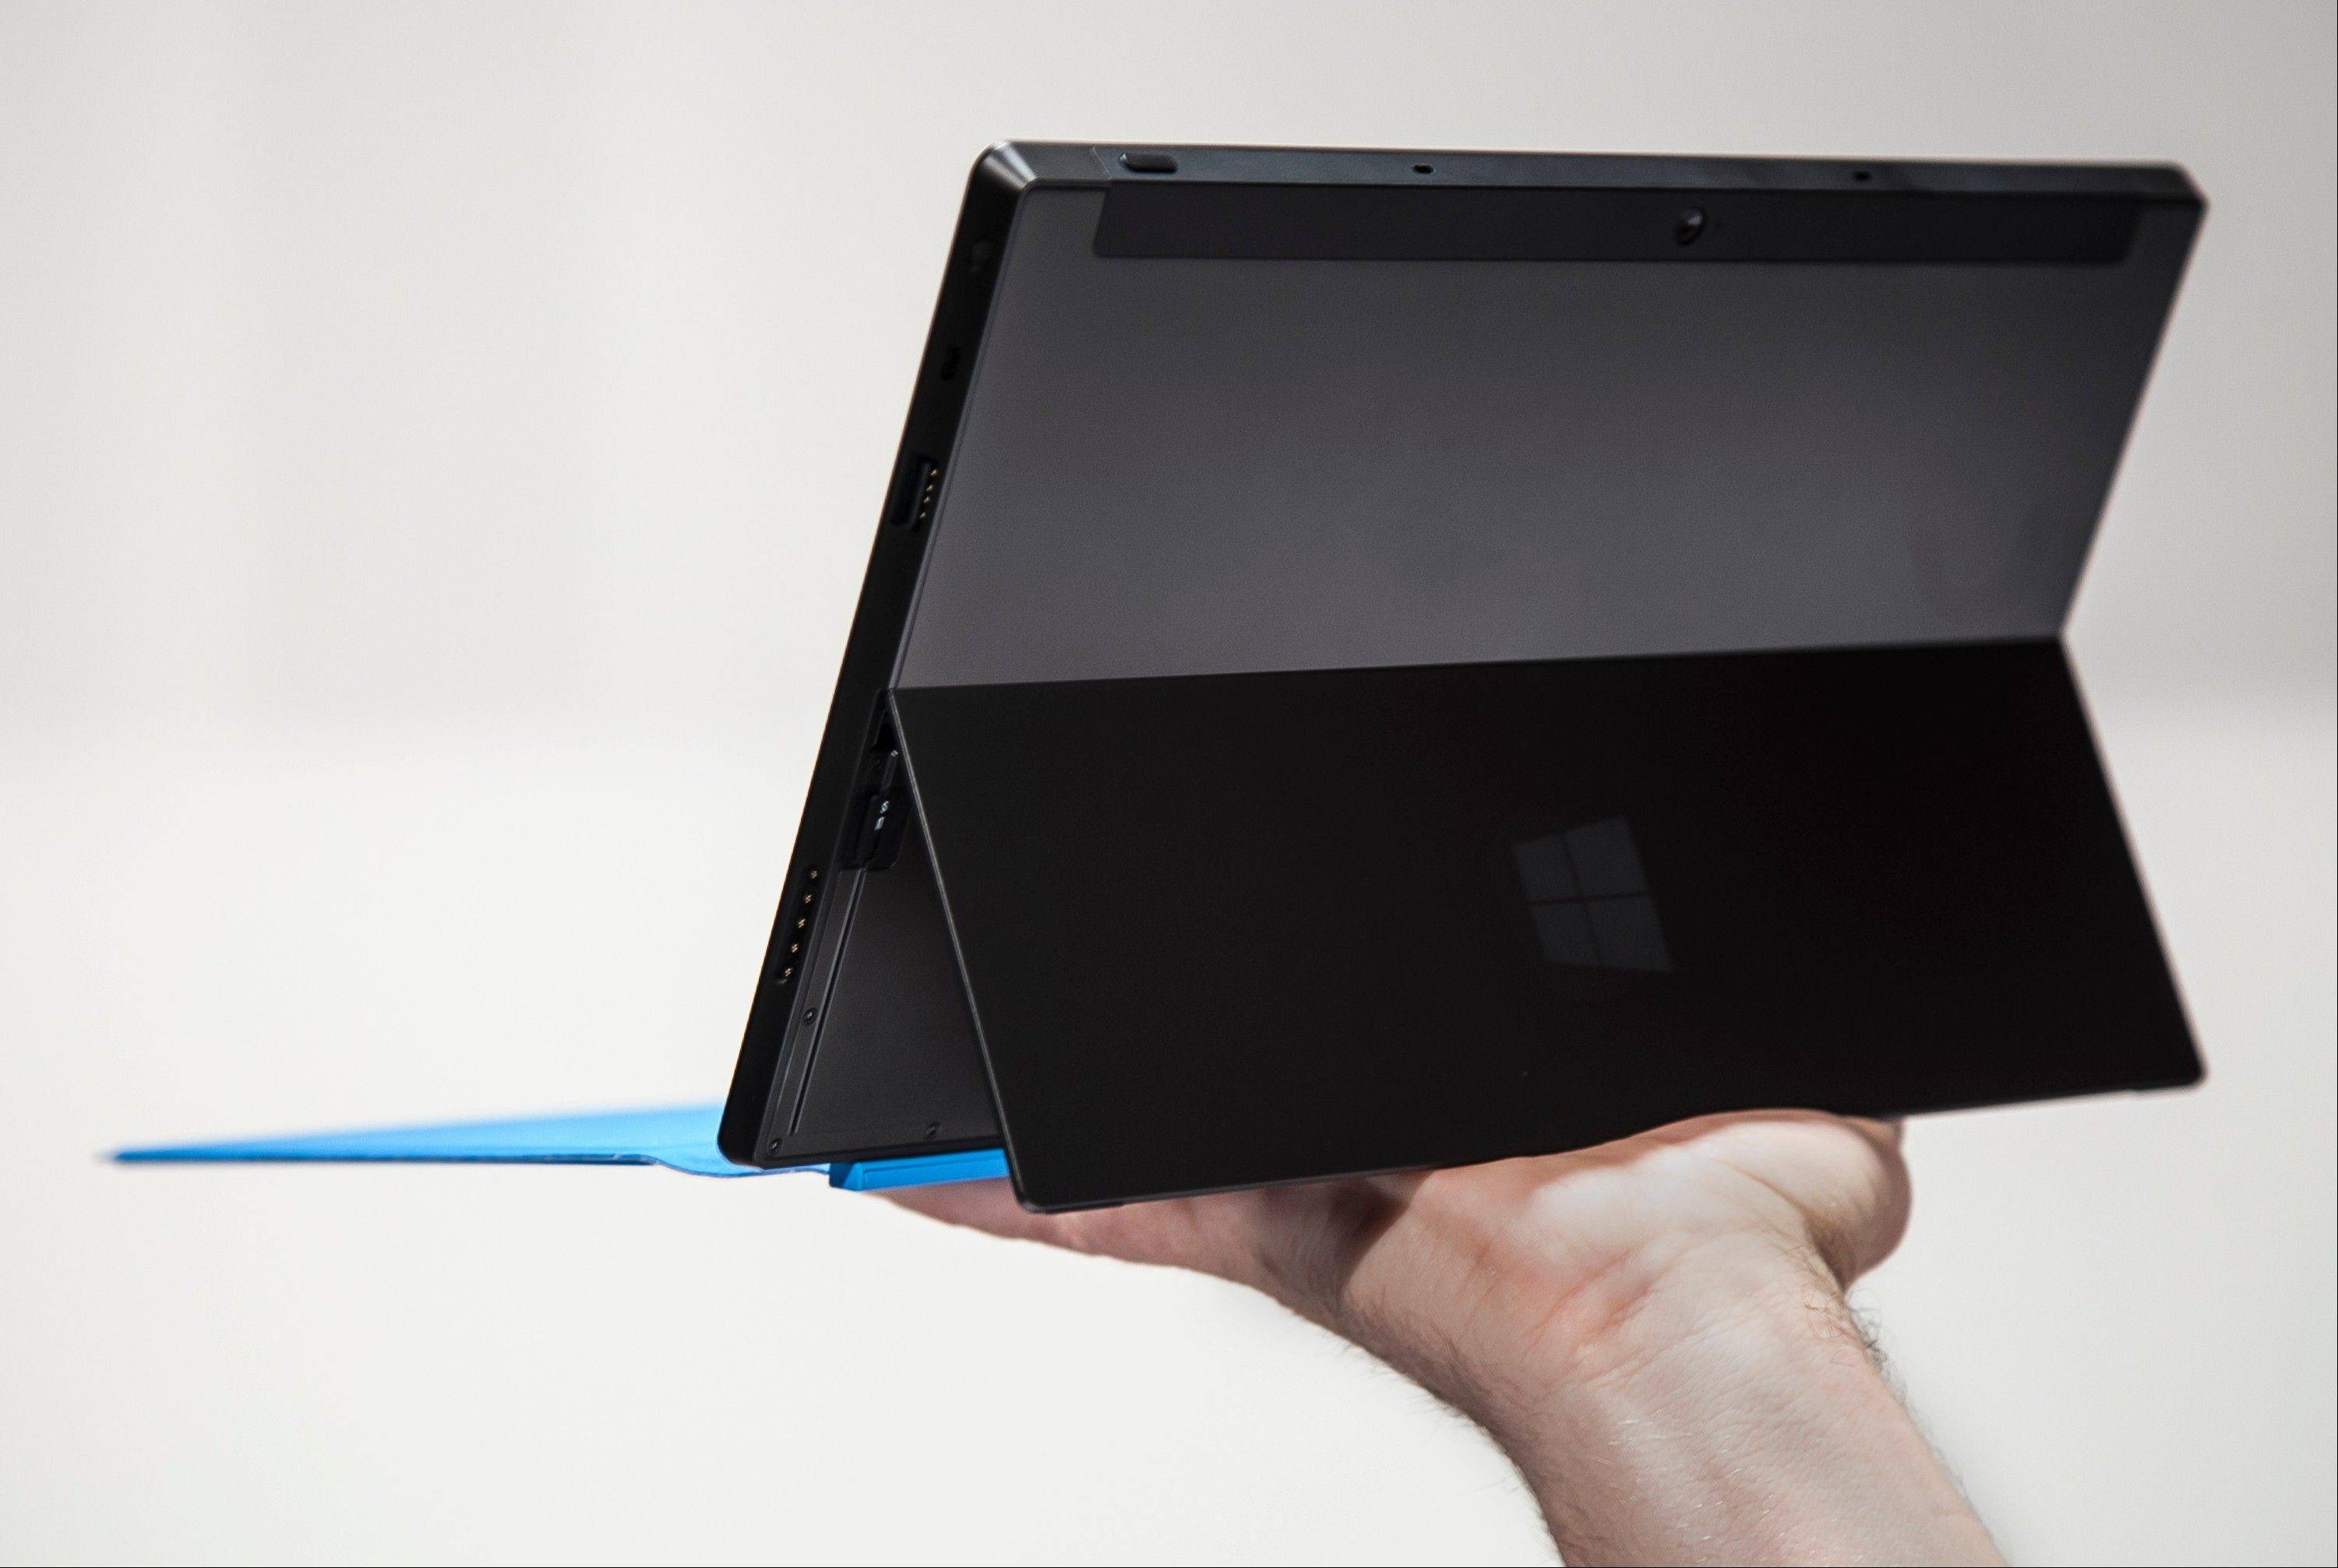 Microsoft�s new Surface tablet computer will start at $499 when it goes on sale Oct. 26. The price matches that of Apple Inc.�s iPad, the most popular tablet computer.